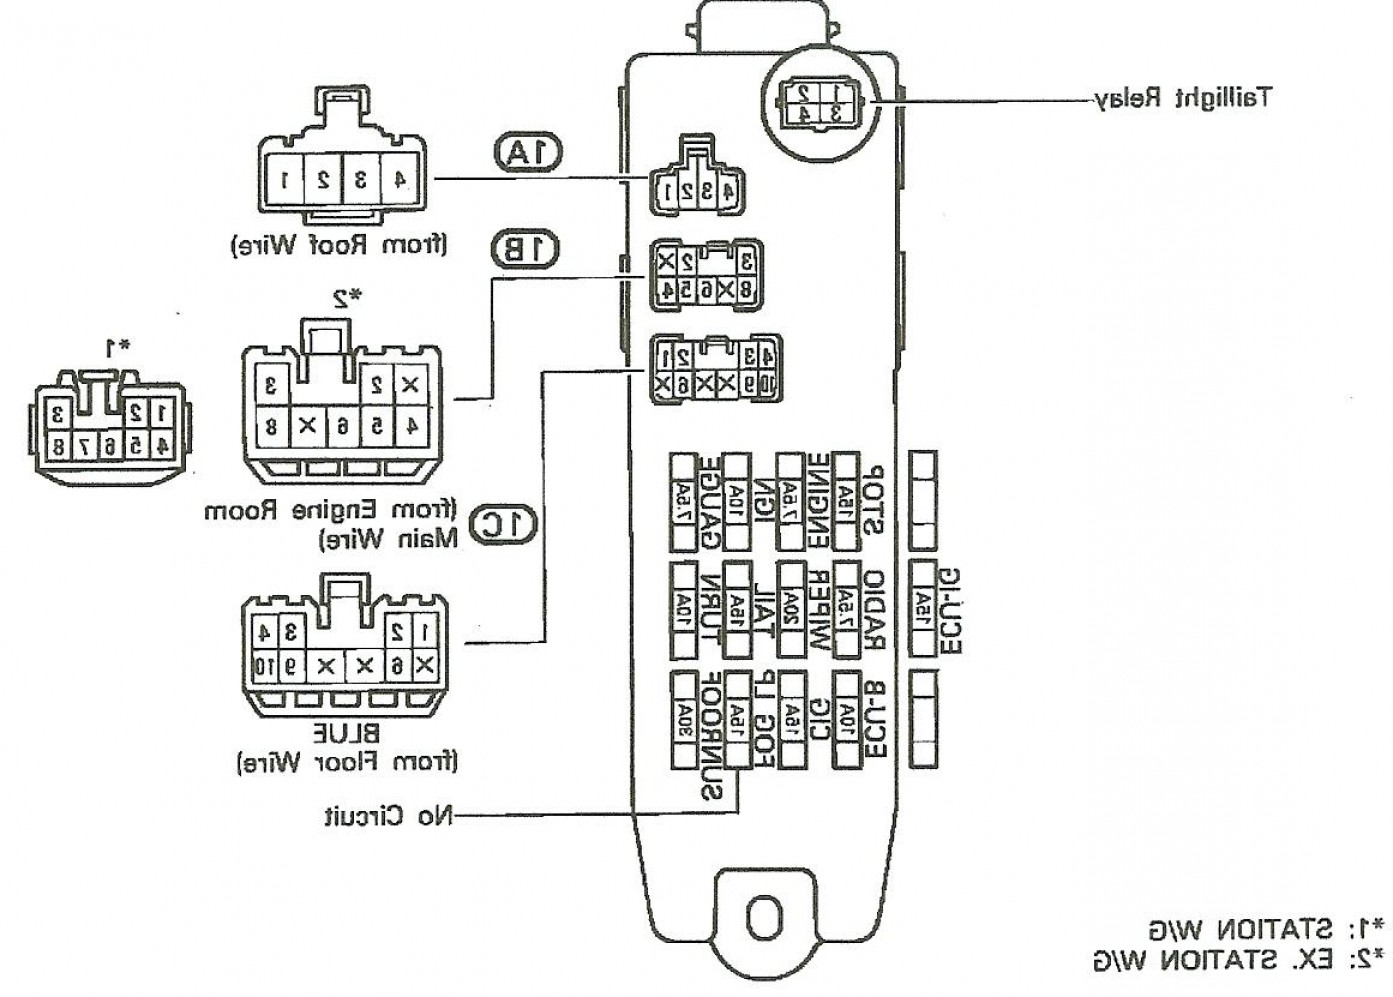 Xs Wiring Diagram on xvz1300 wiring diagram, xv535 wiring diagram, yamaha wiring diagram, it 250 wiring diagram, xs850 wiring diagram, fjr1300 wiring diagram, xj550 wiring diagram, xs650 wiring diagram, xj1100 wiring diagram, xj650 wiring diagram, xt350 wiring diagram, sr500 wiring diagram, xv1000 wiring diagram, tw200 wiring diagram, xs400 wiring diagram, xj750 wiring diagram, virago wiring diagram, rz350 wiring diagram, pw50 wiring diagram, yzf r6 wiring diagram,